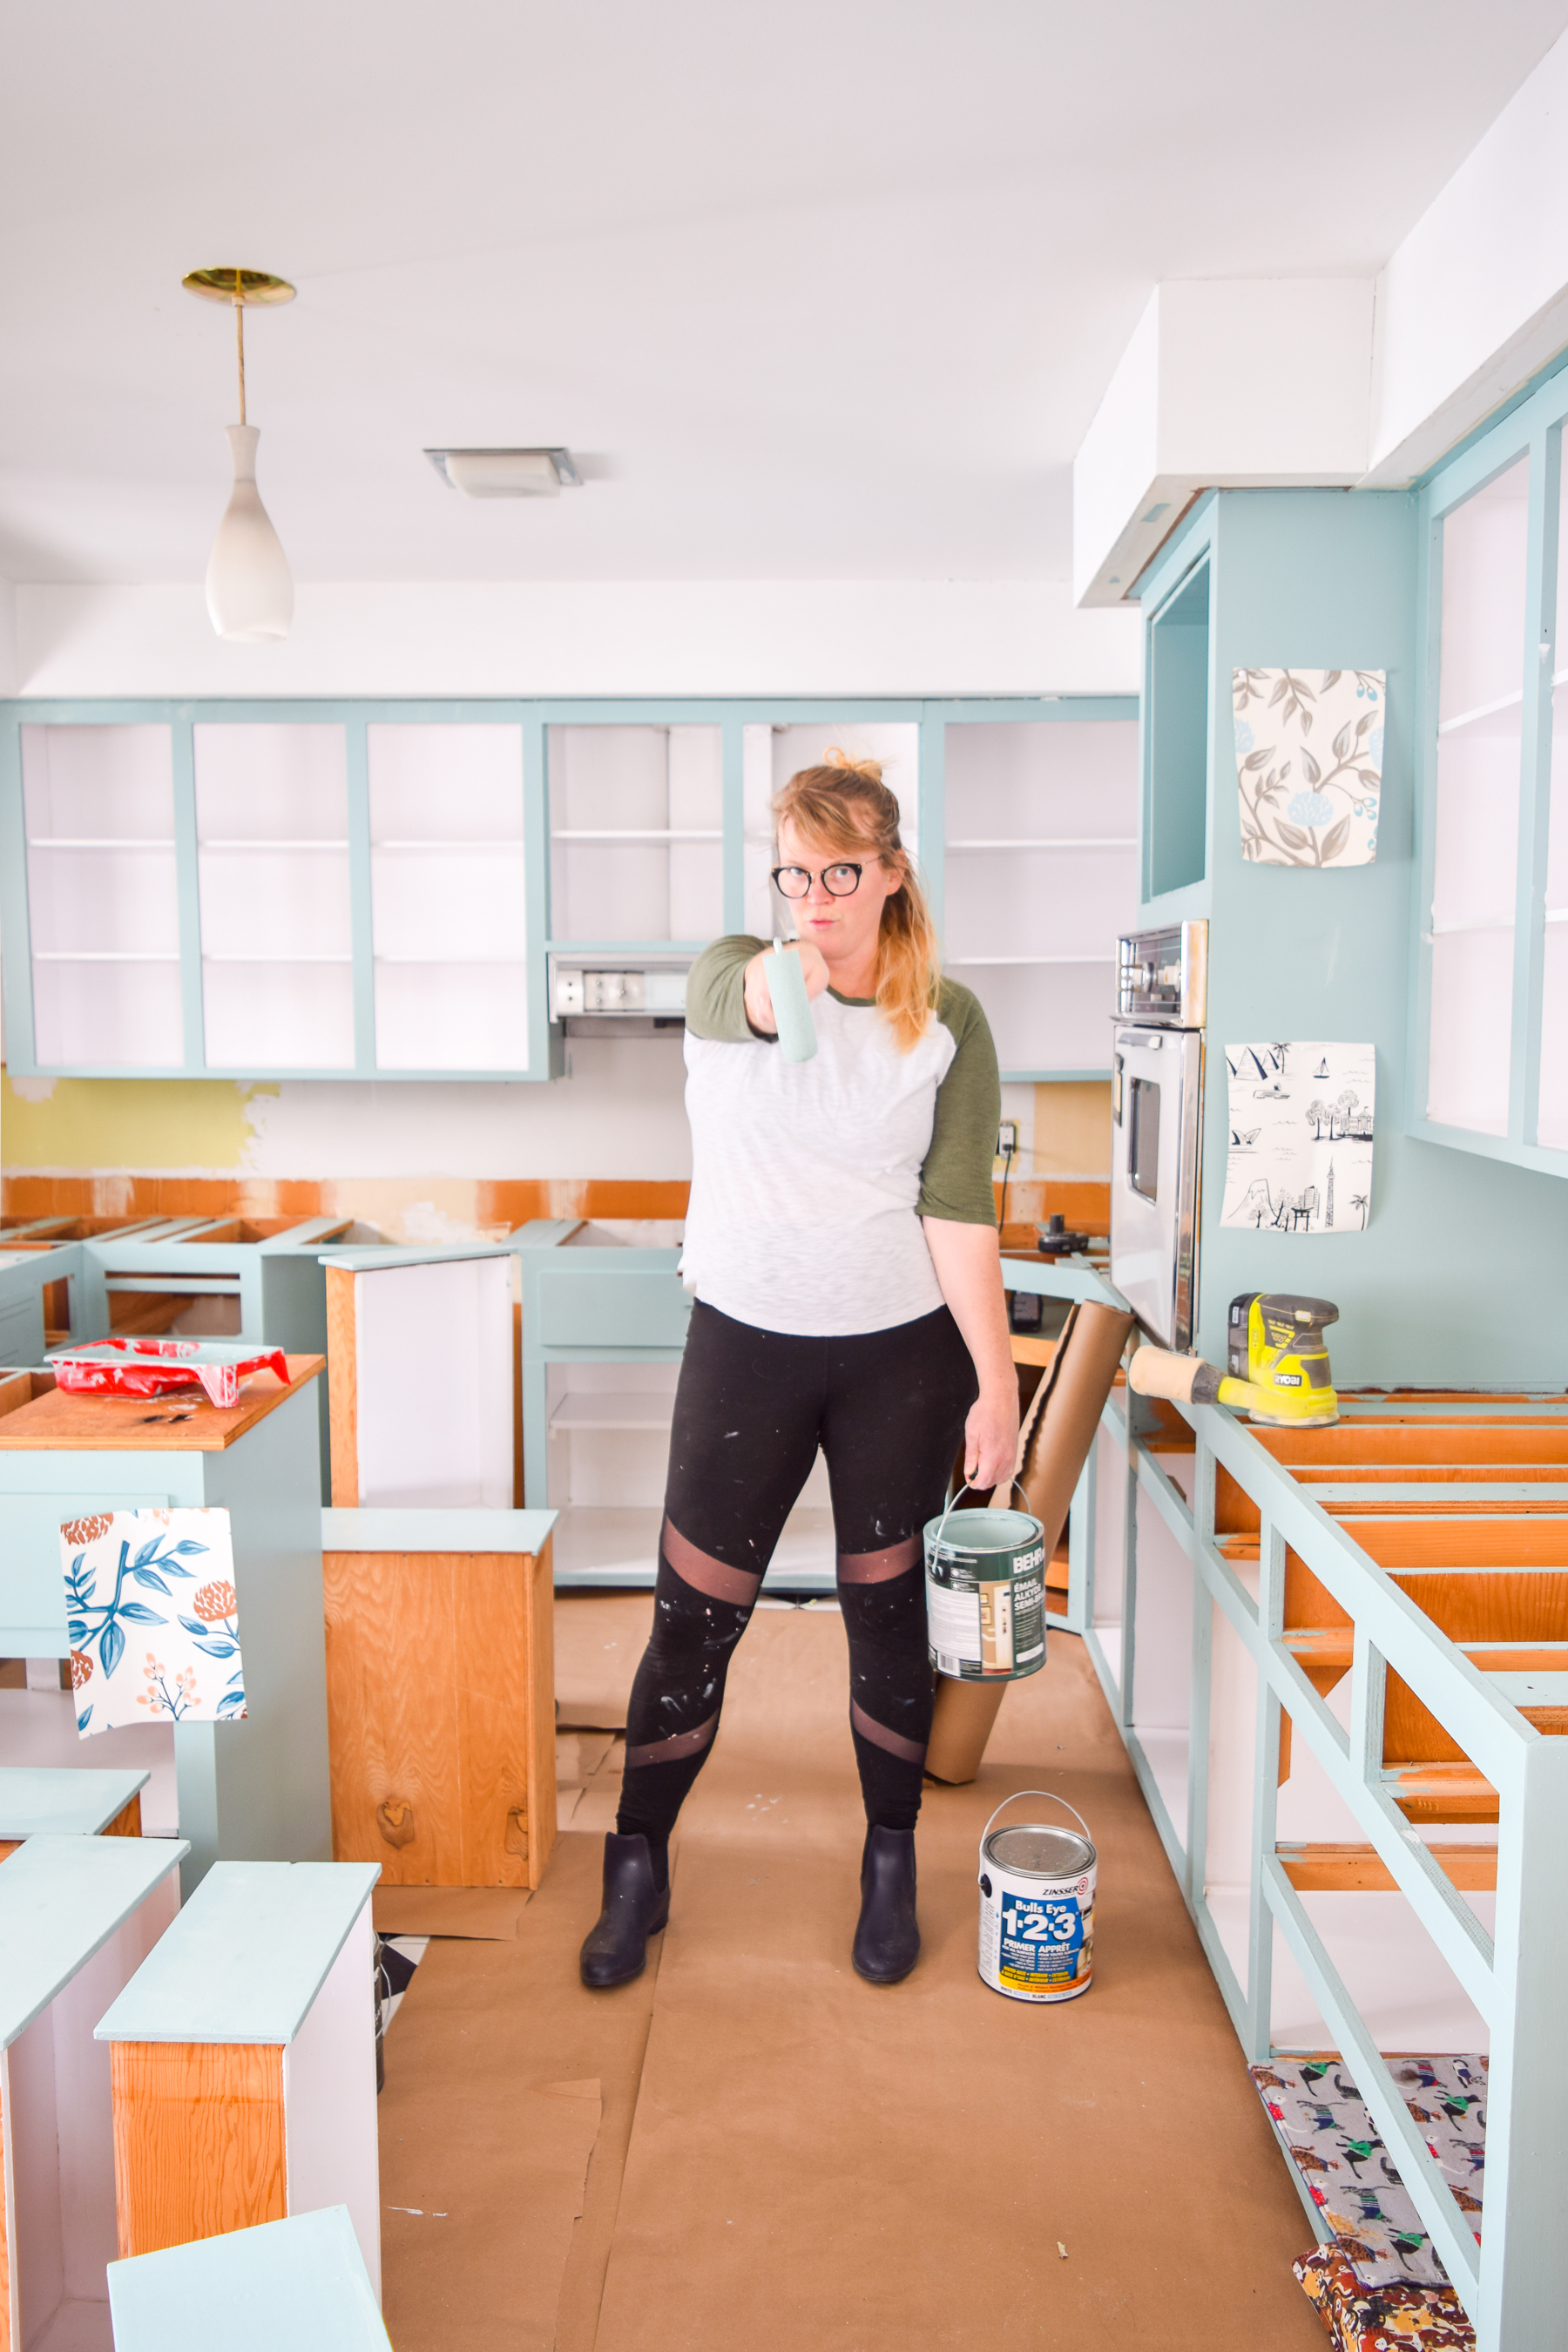 how to paint your plywood kitchen cabinets: first of all, do you even? Yes, paint them, and use the right paint formula and tools! Retro Kitchen can be cute again.